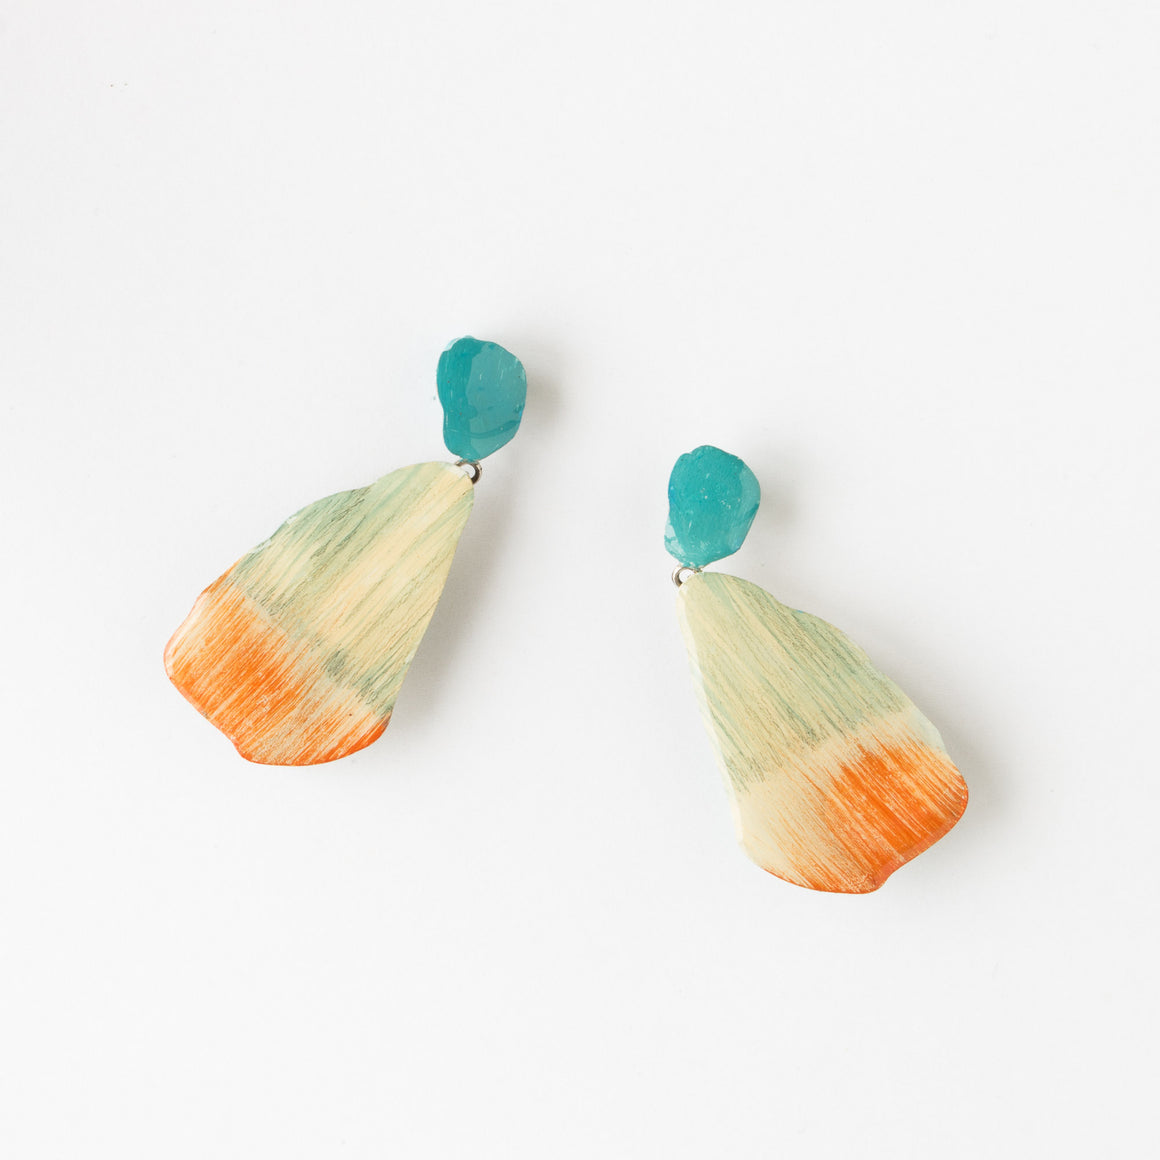 221 - Large Contemporary Hanging Earrings - Sold by Chic & Basta